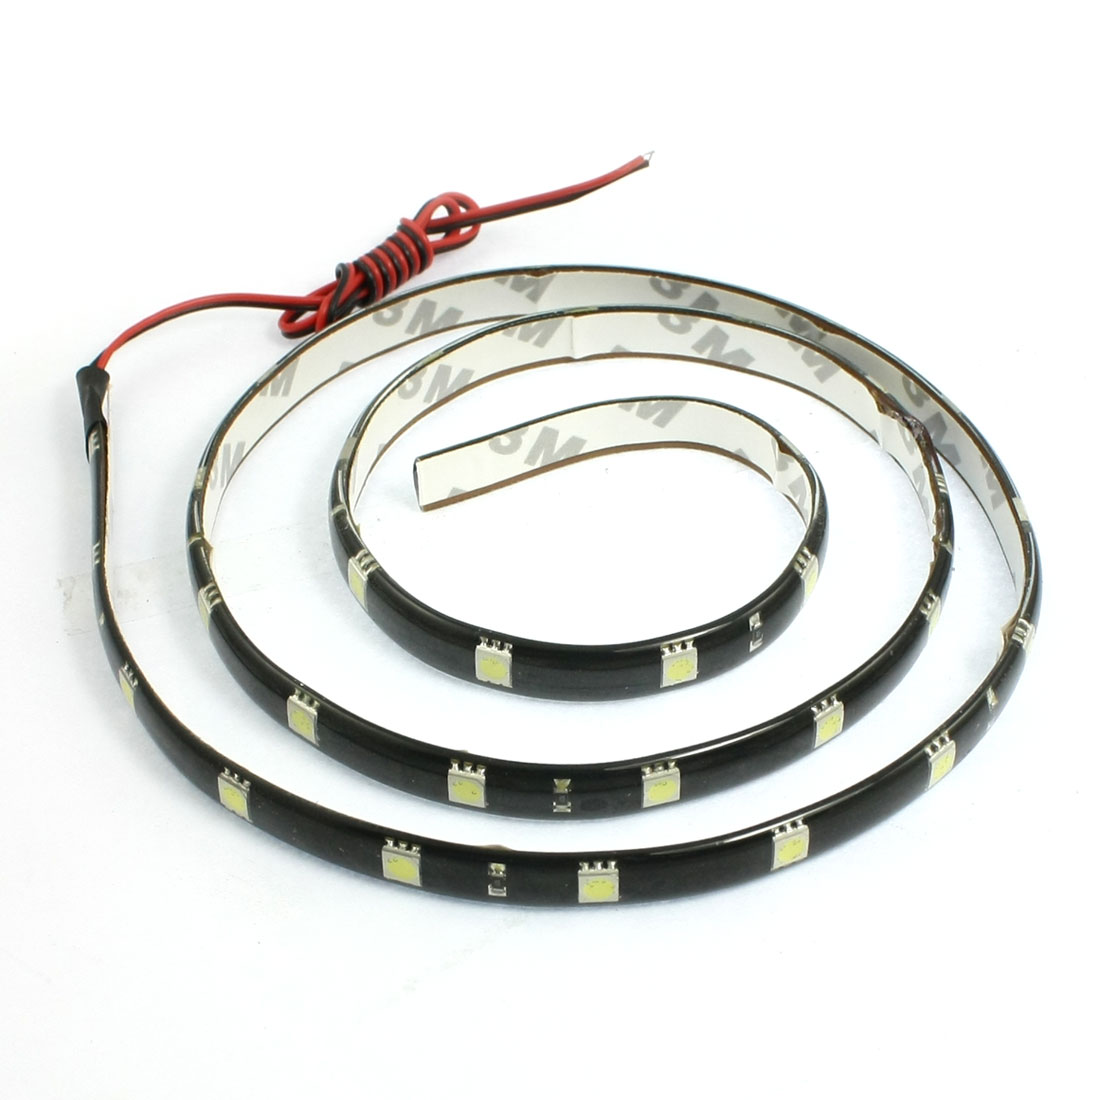 Car Auto DC 12V White 5050 SMD 36-LED Strip Light Lamp 90cm